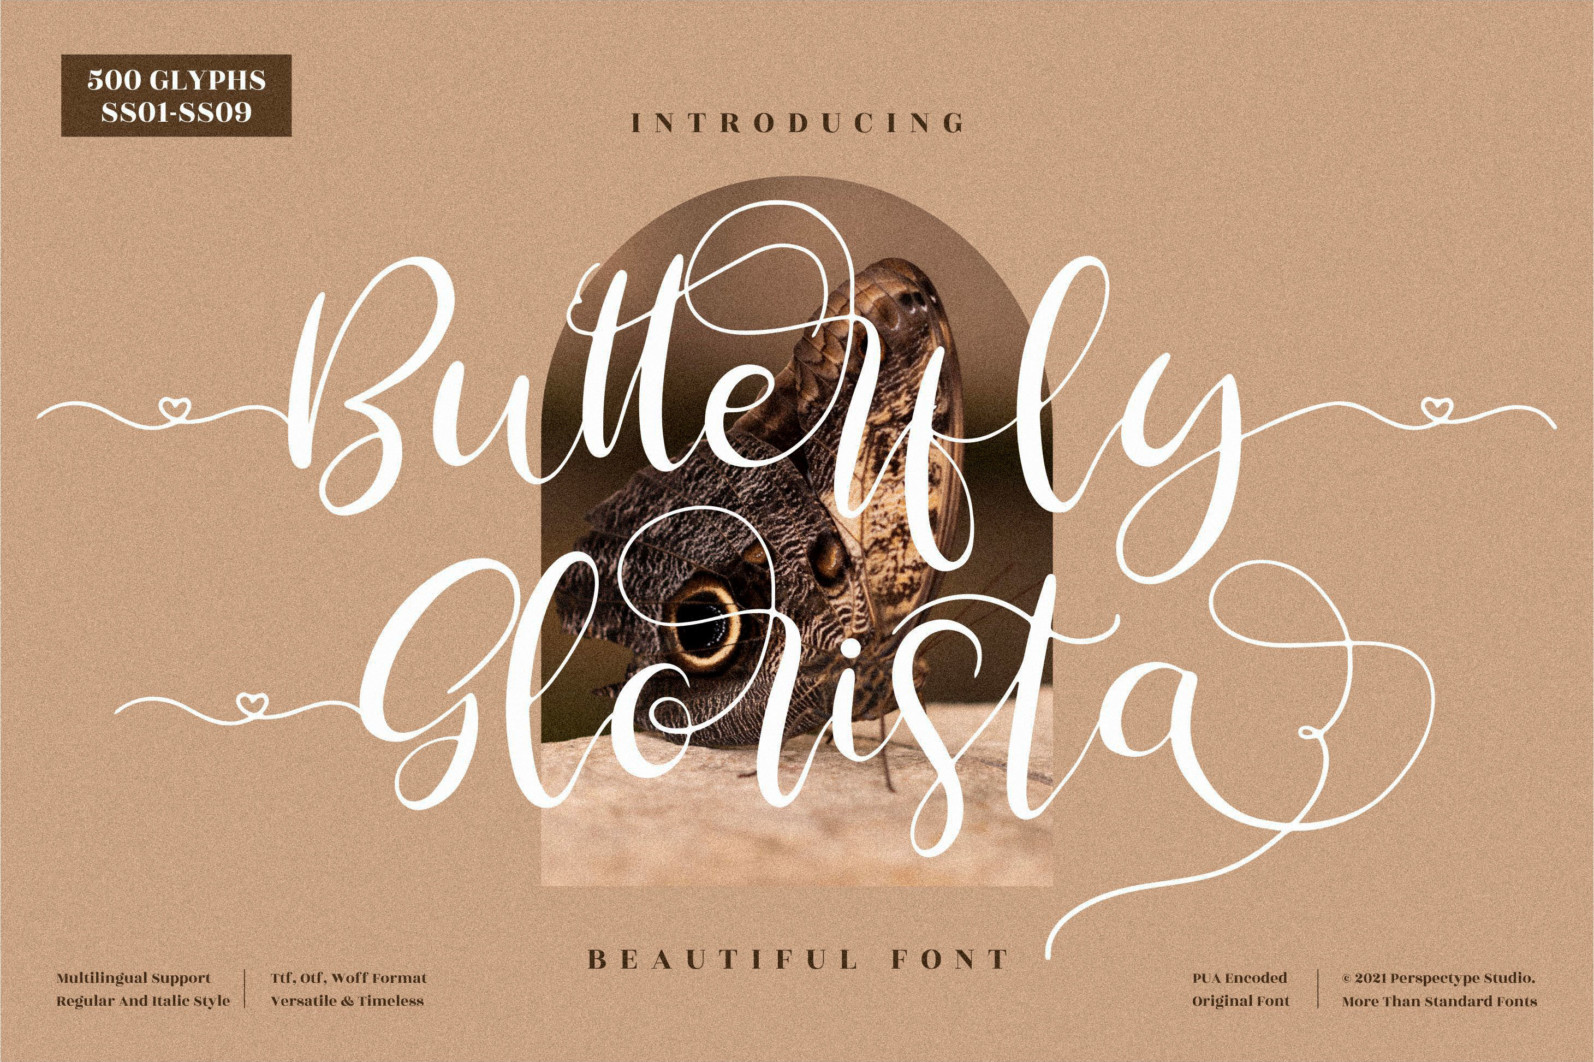 Love love Font Bundle from Perspectype Studio - 14 34 scaled -